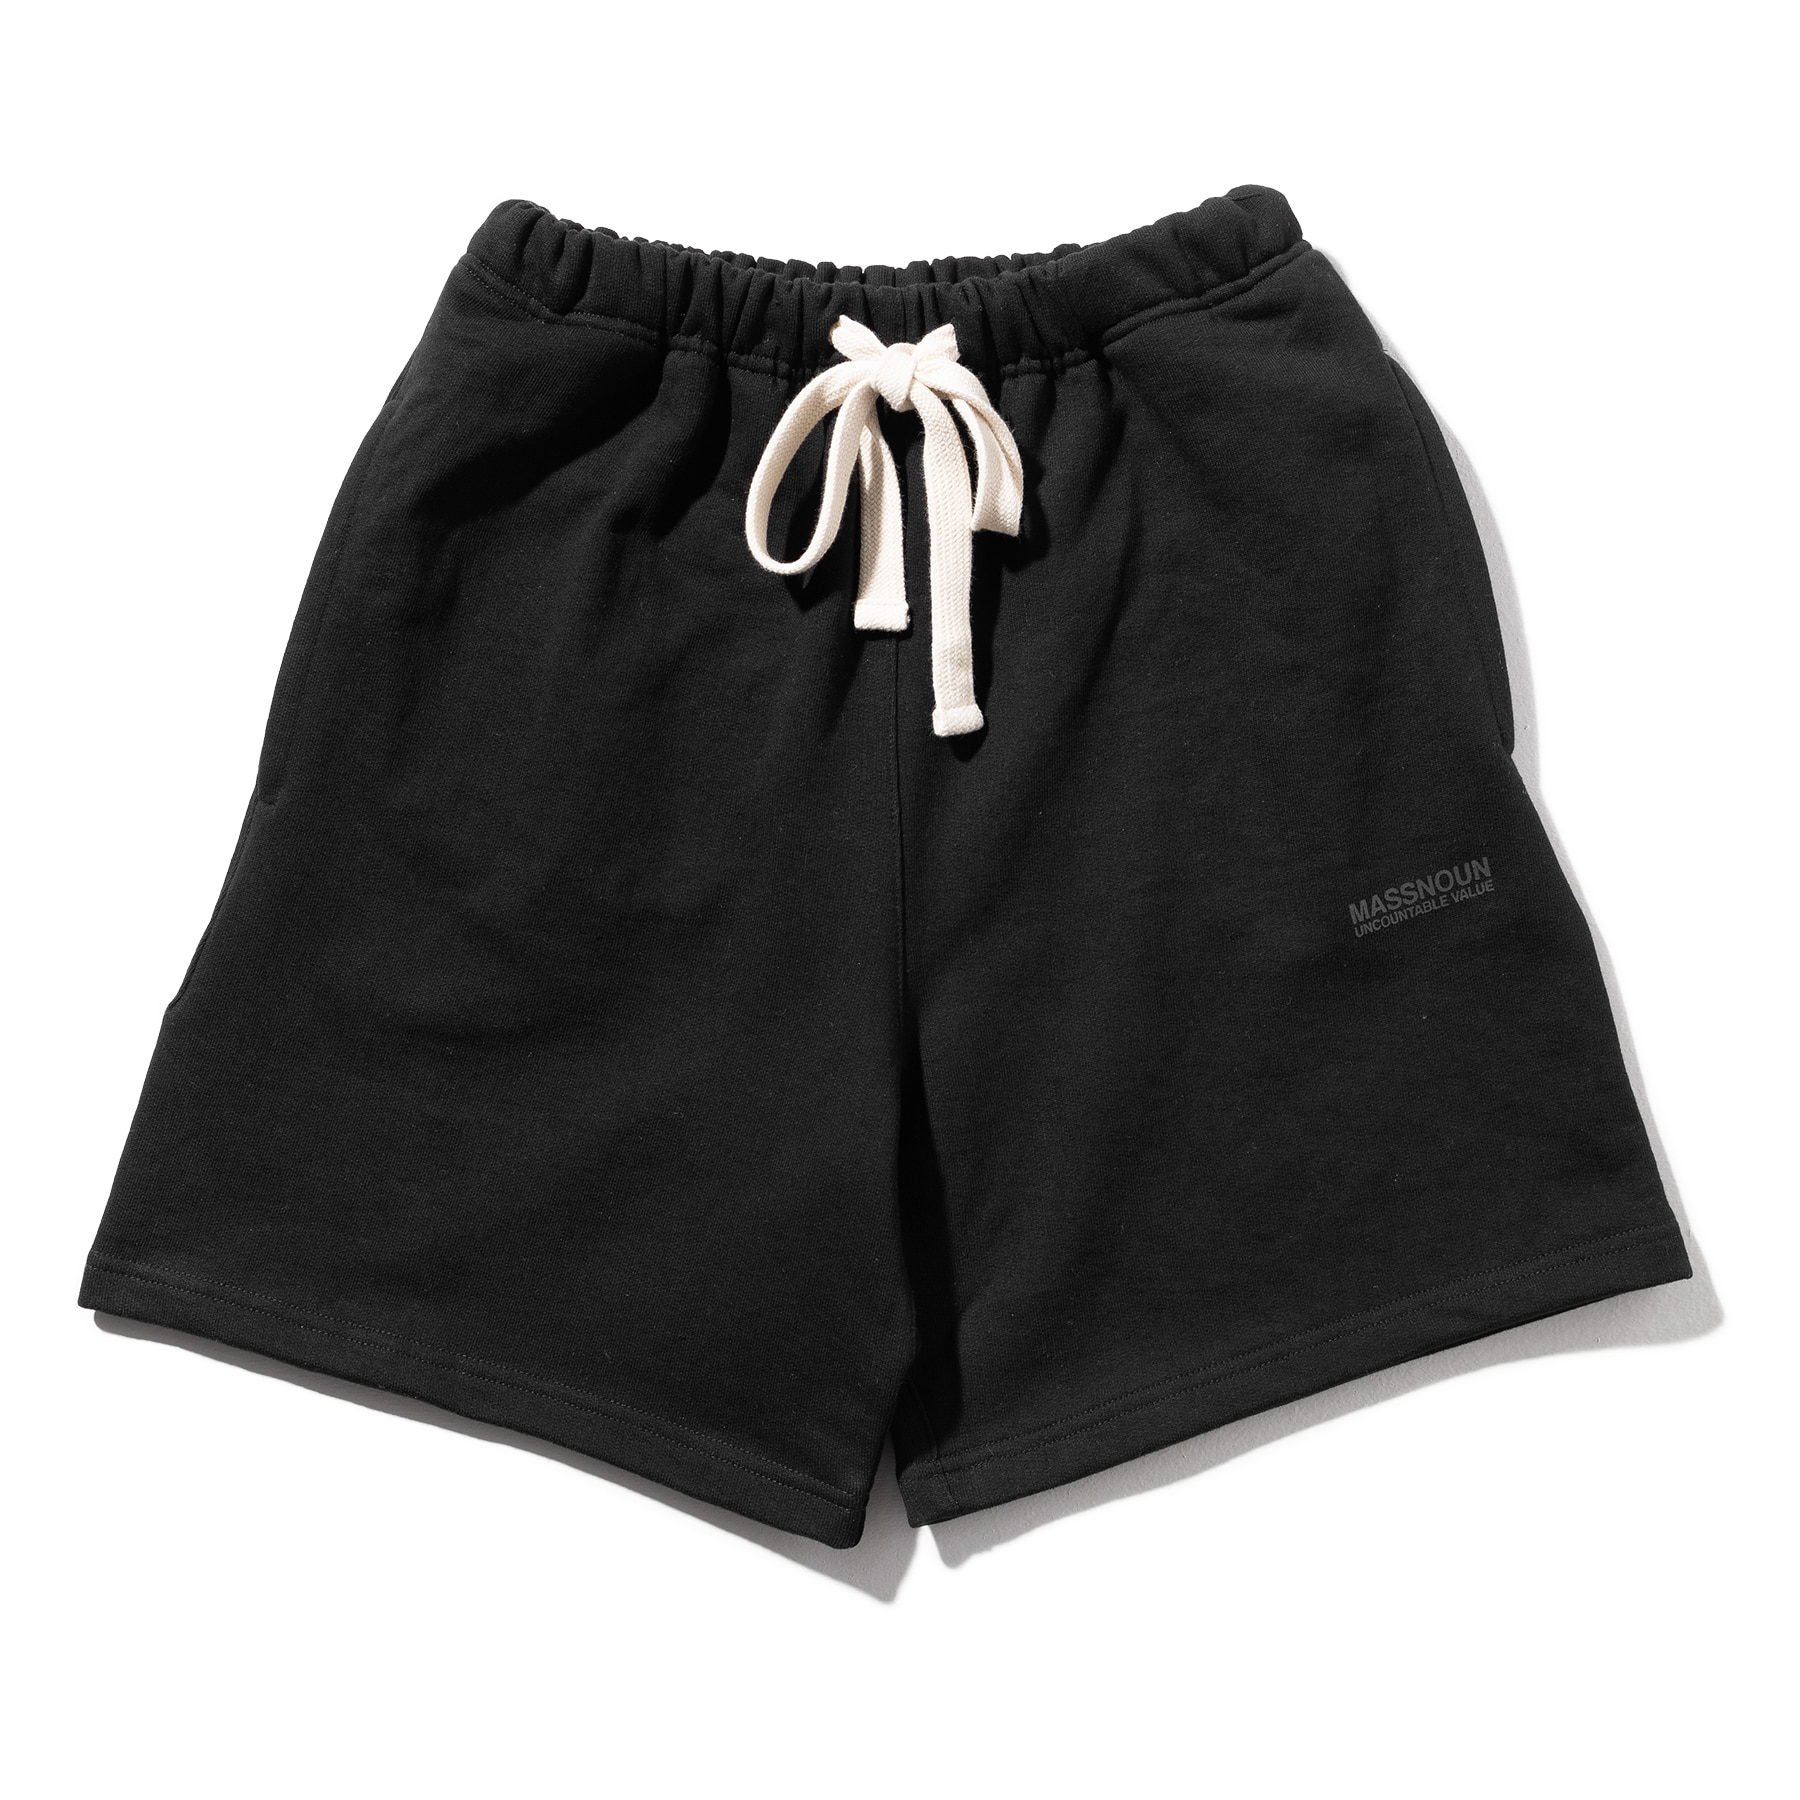 SCOTCH TRAINING SHORT PANTS MSOSP001-BK